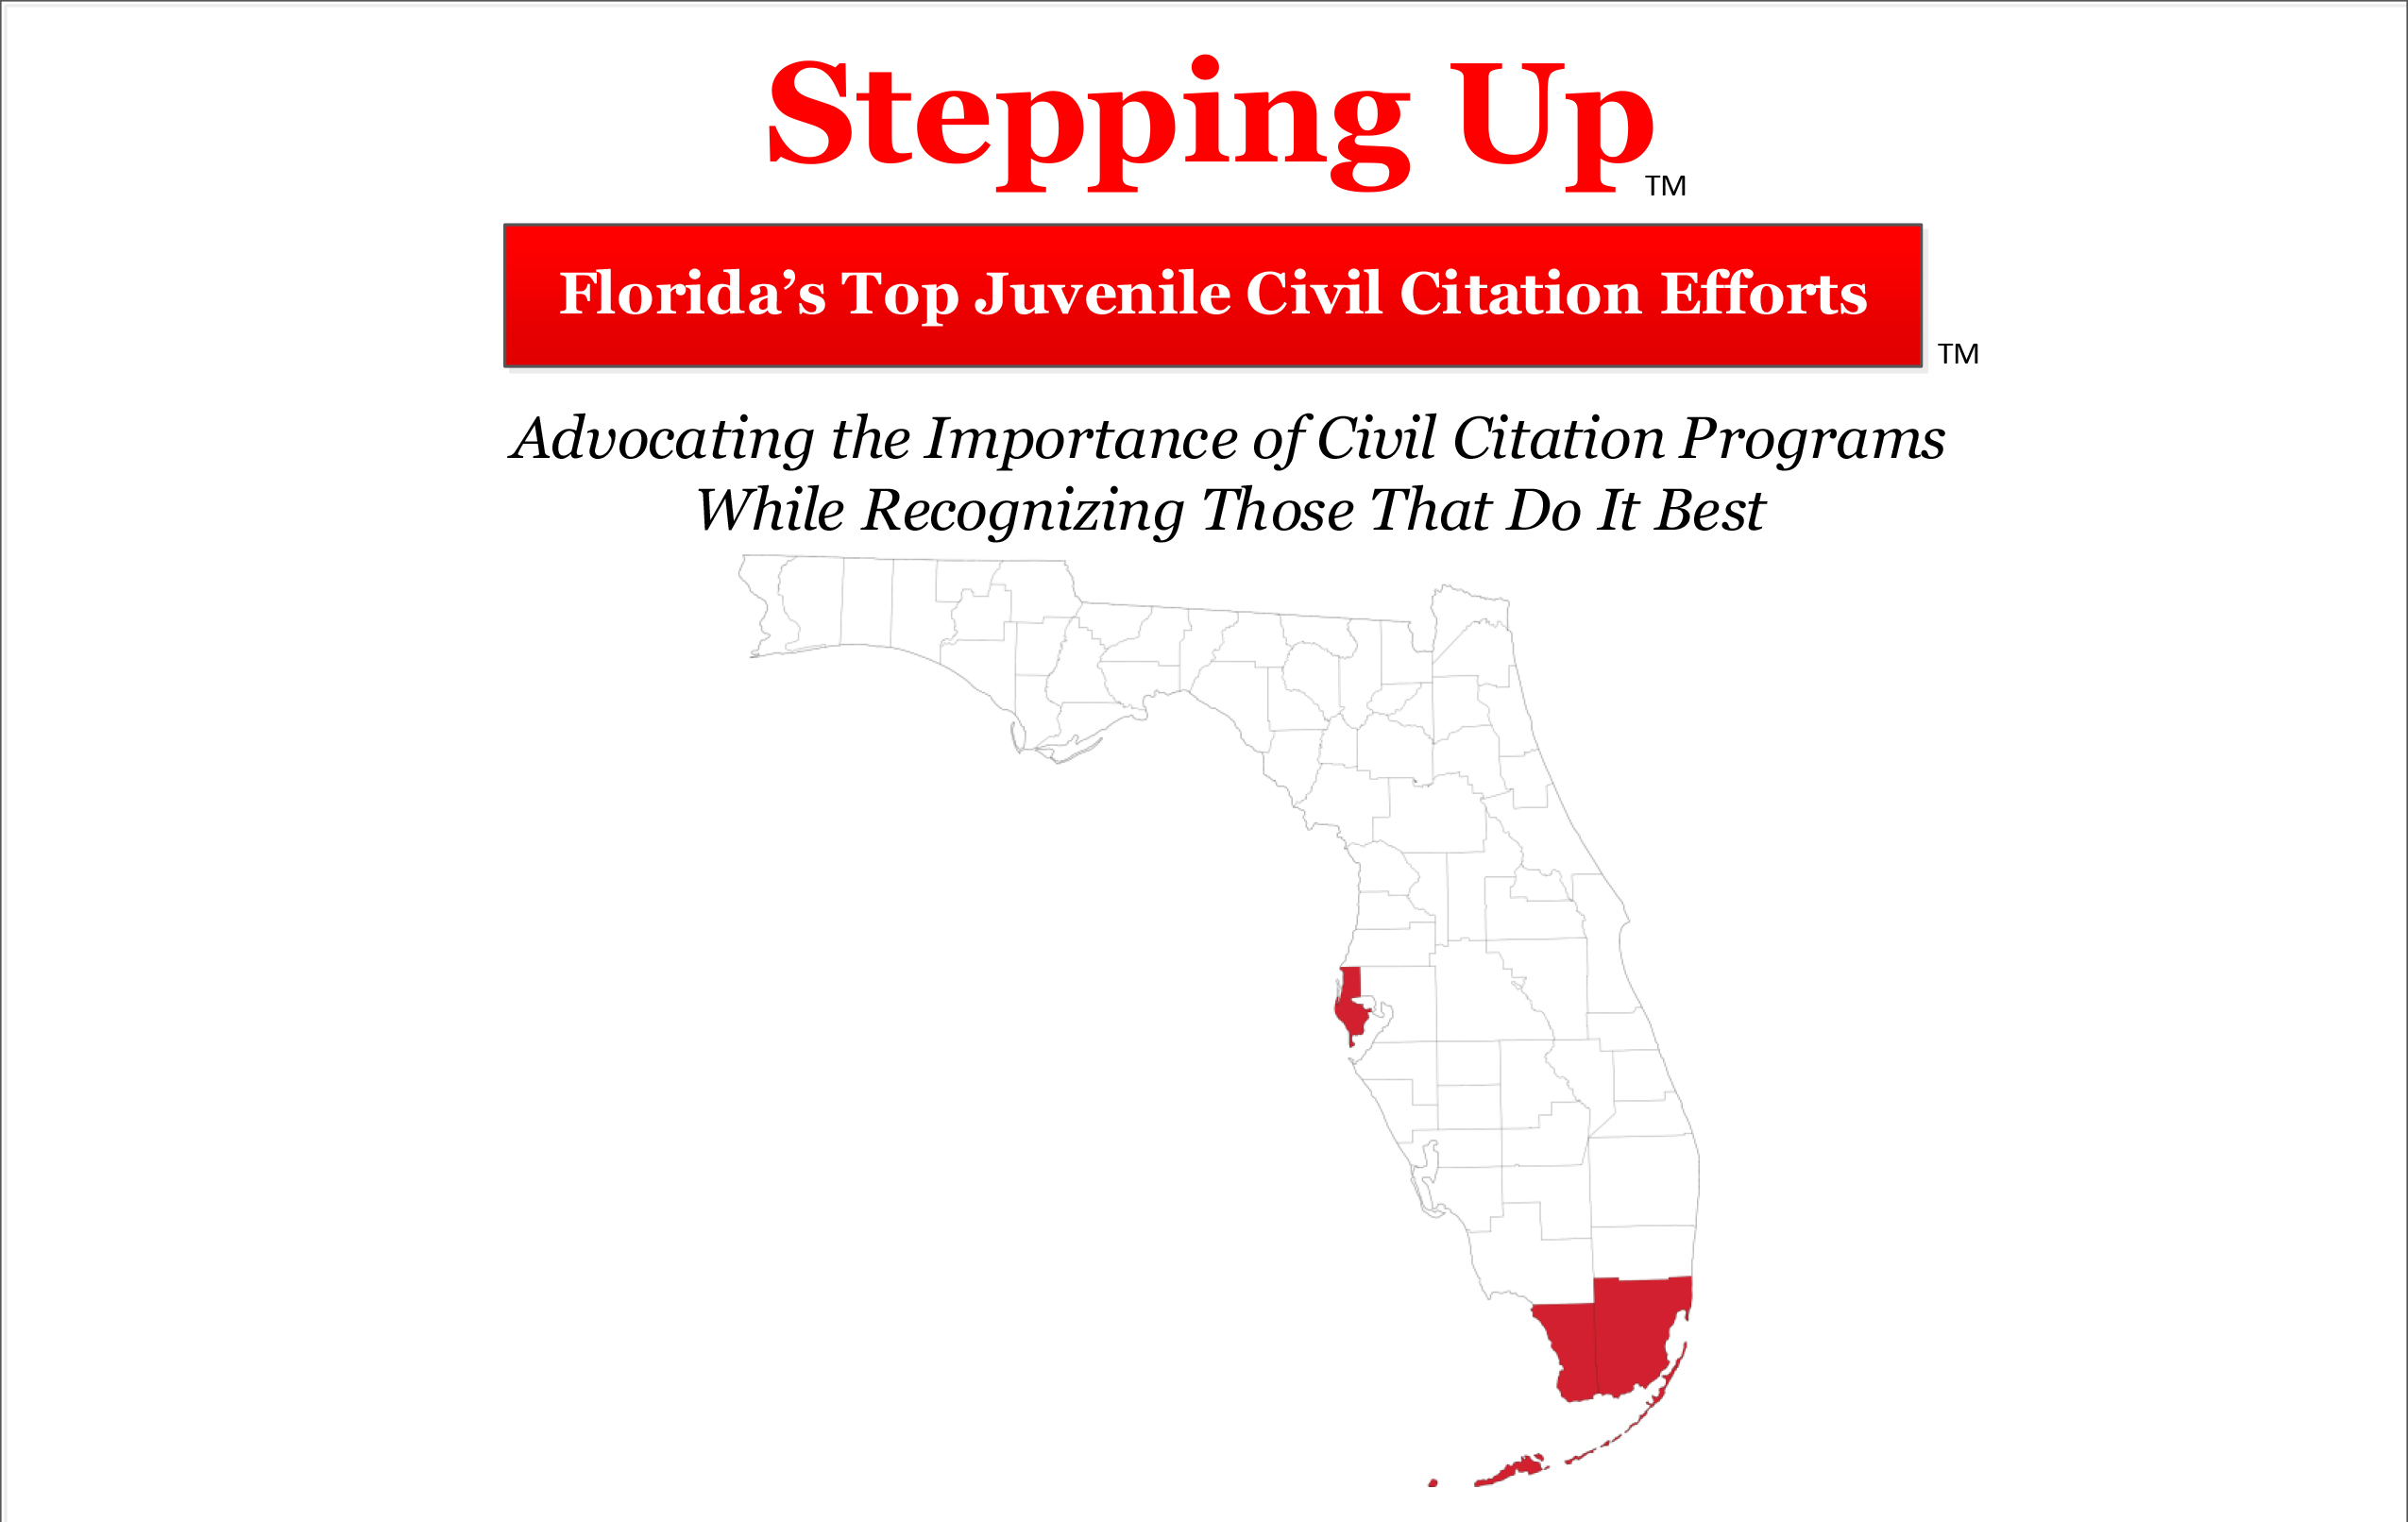 Florida counties fare poor on juvenile civil citation rates with three-quarters earning an F grade